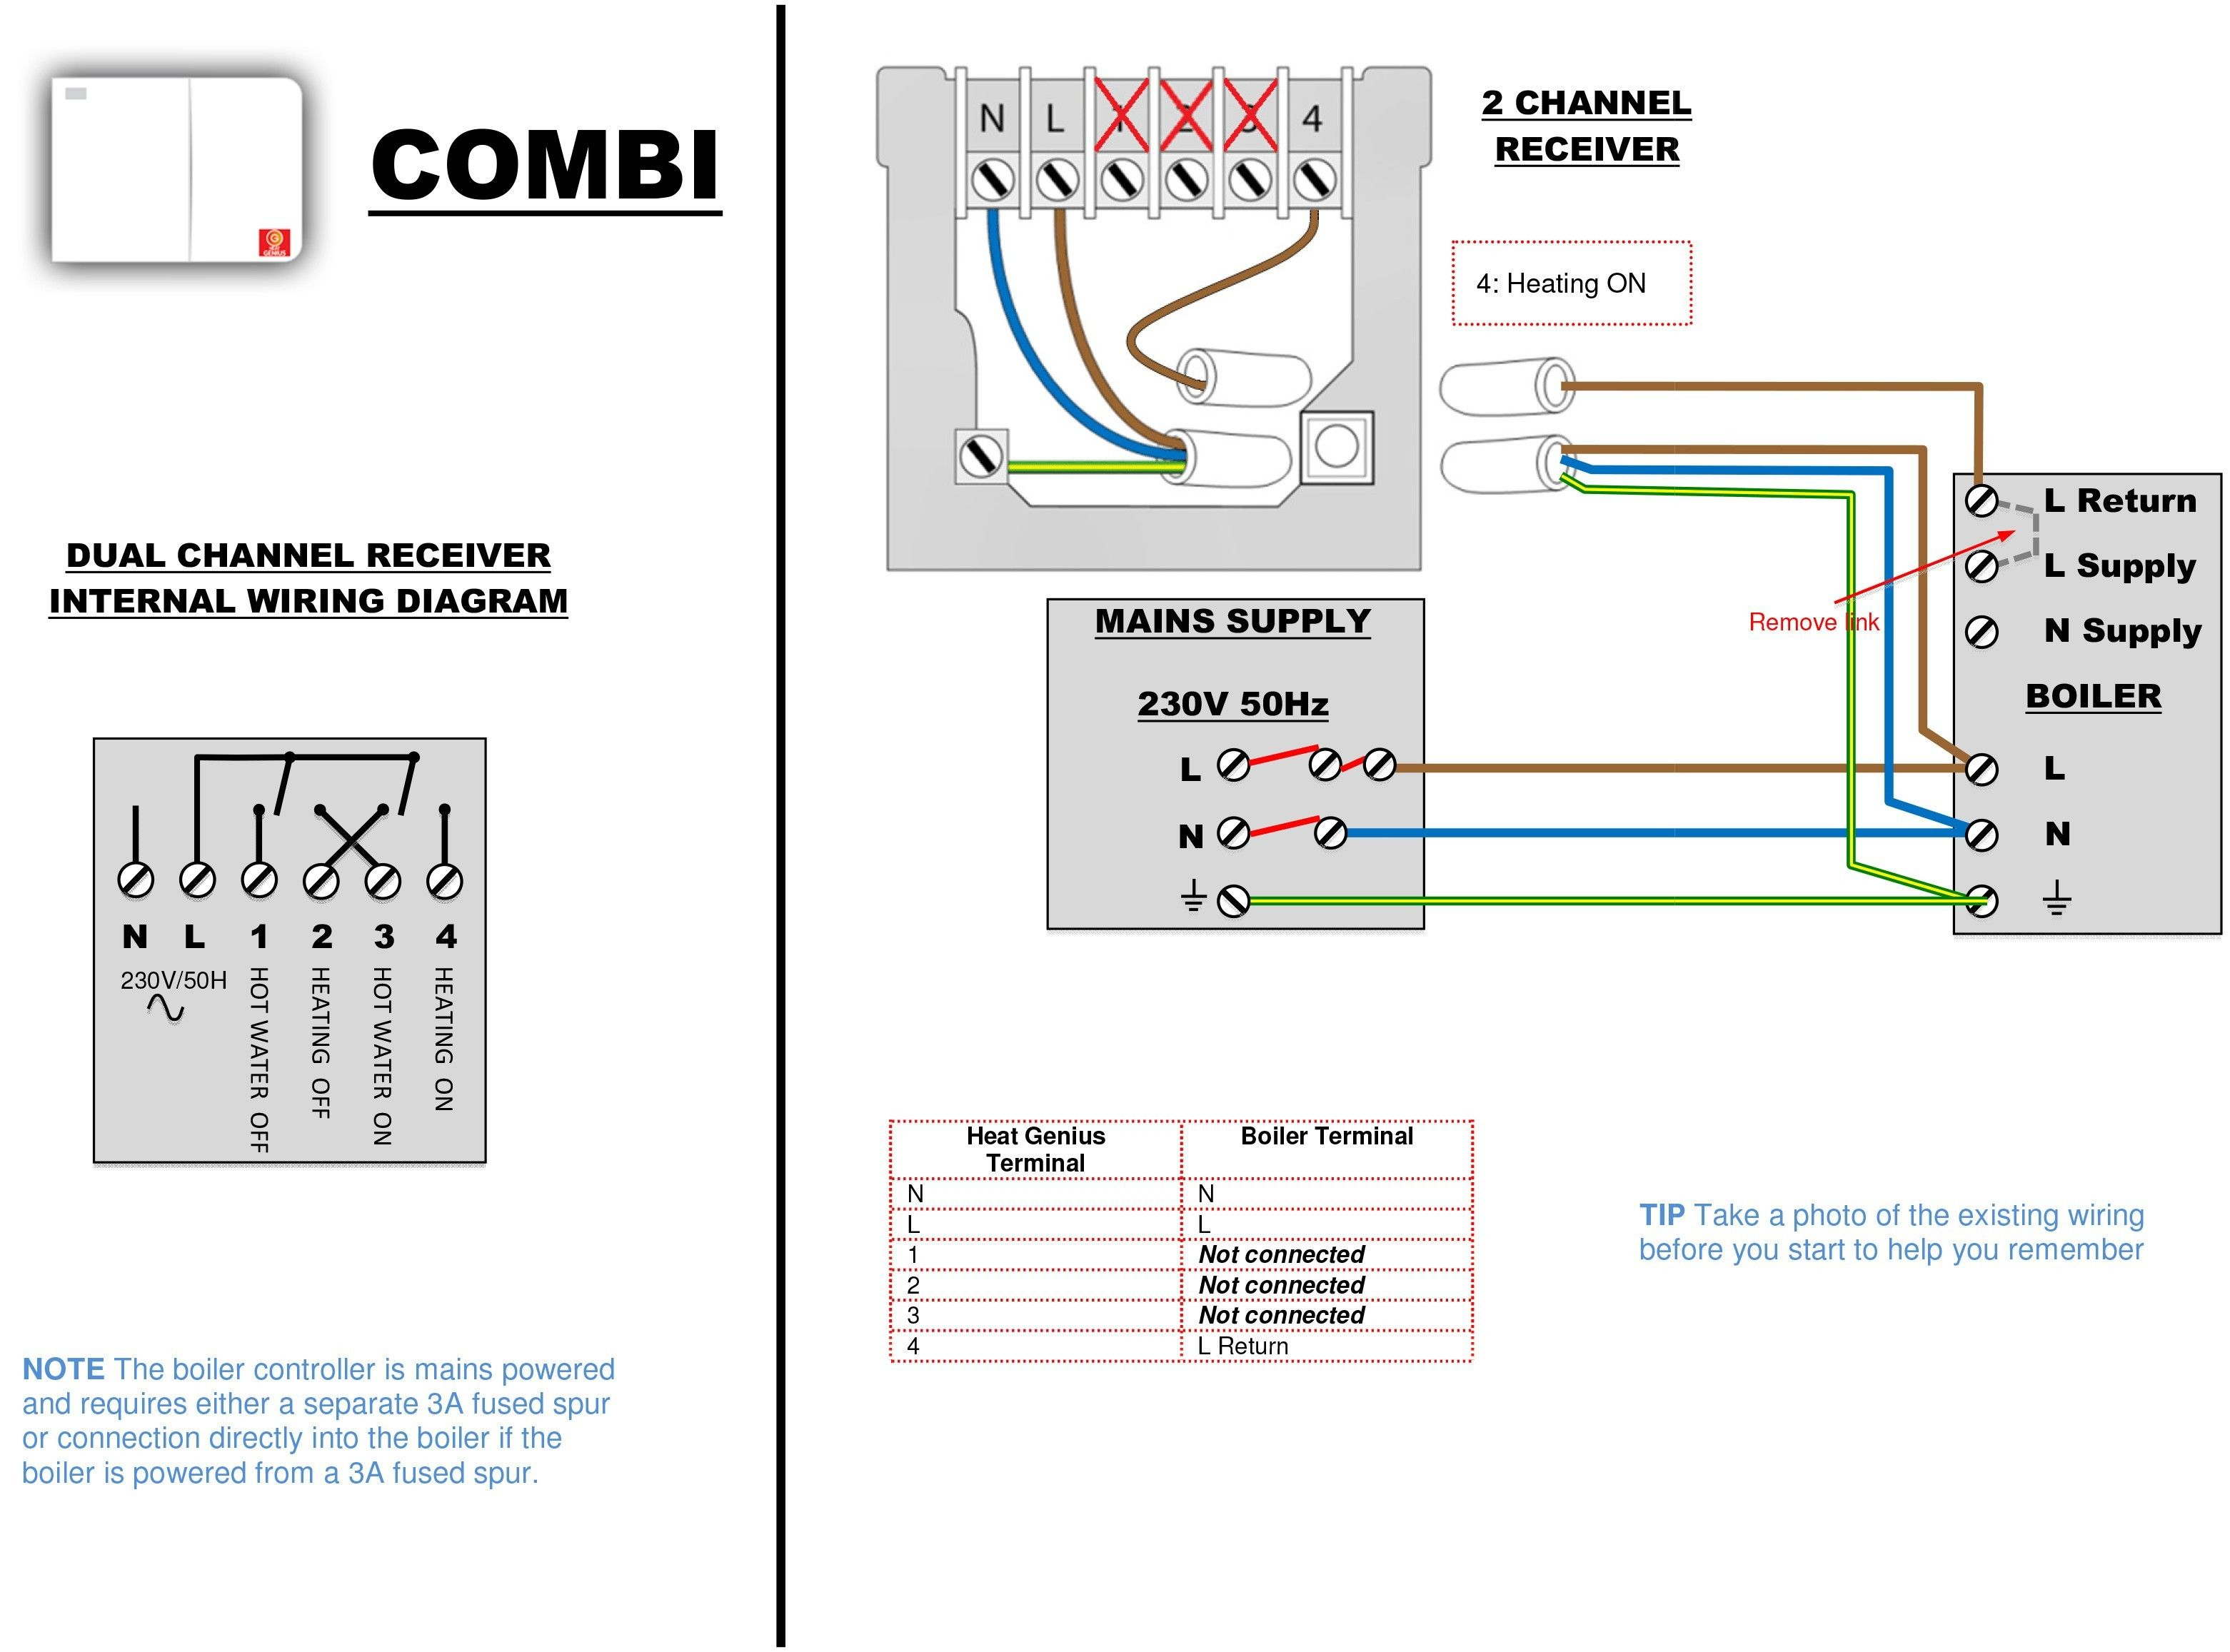 [QNCB_7524]  Unique Combi Boiler Programmer Wiring Diagram #diagram #diagramtemplate  #diagramsample | Industrial Gas Boiler Wiring Diagram |  | Pinterest